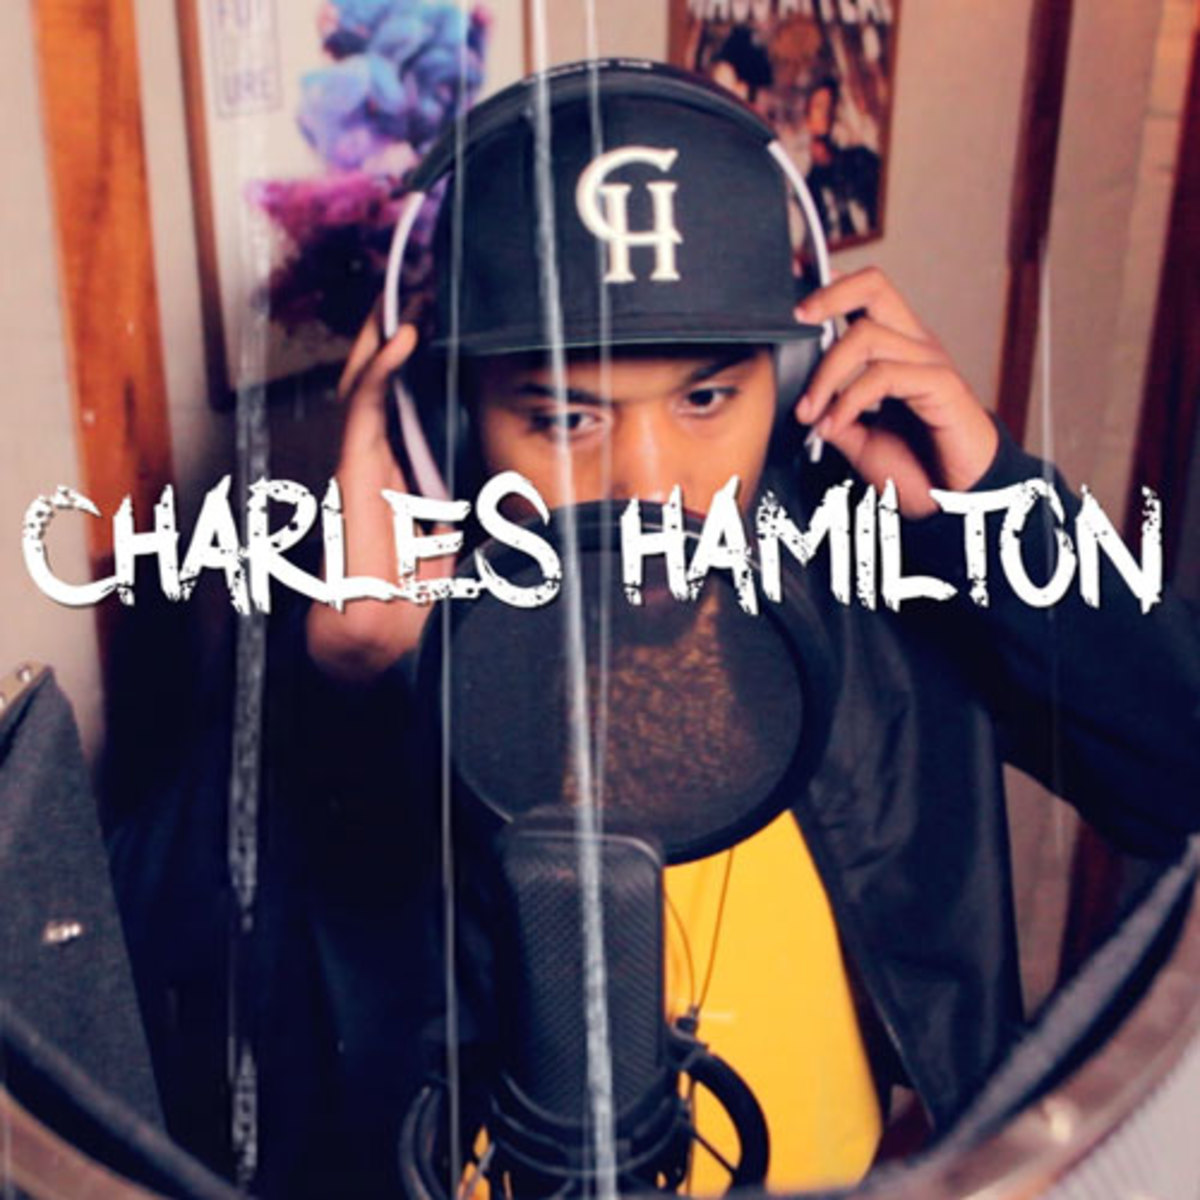 charles-hamilton-bless-the-booth.jpg